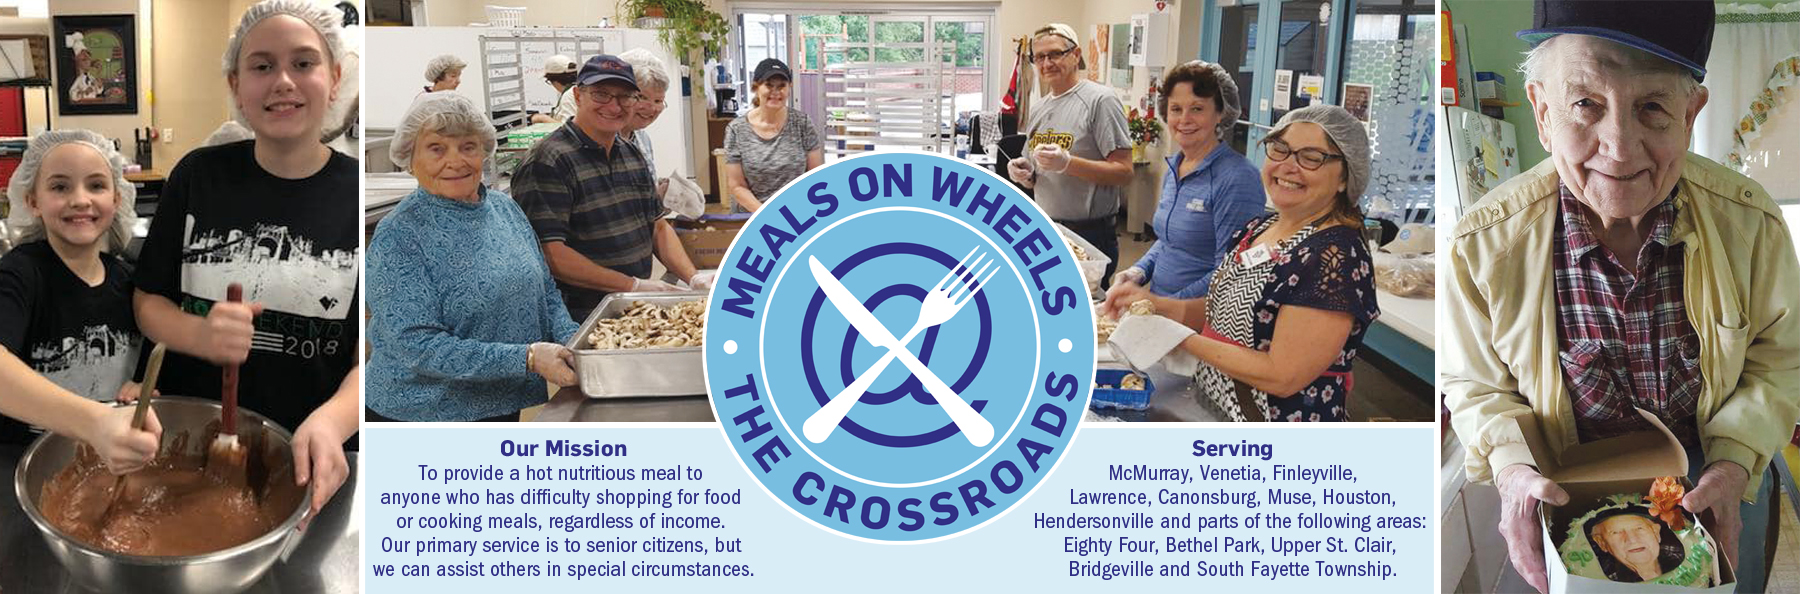 Photos of volunteers, client and Meals on Wheels logo, mission and service areas